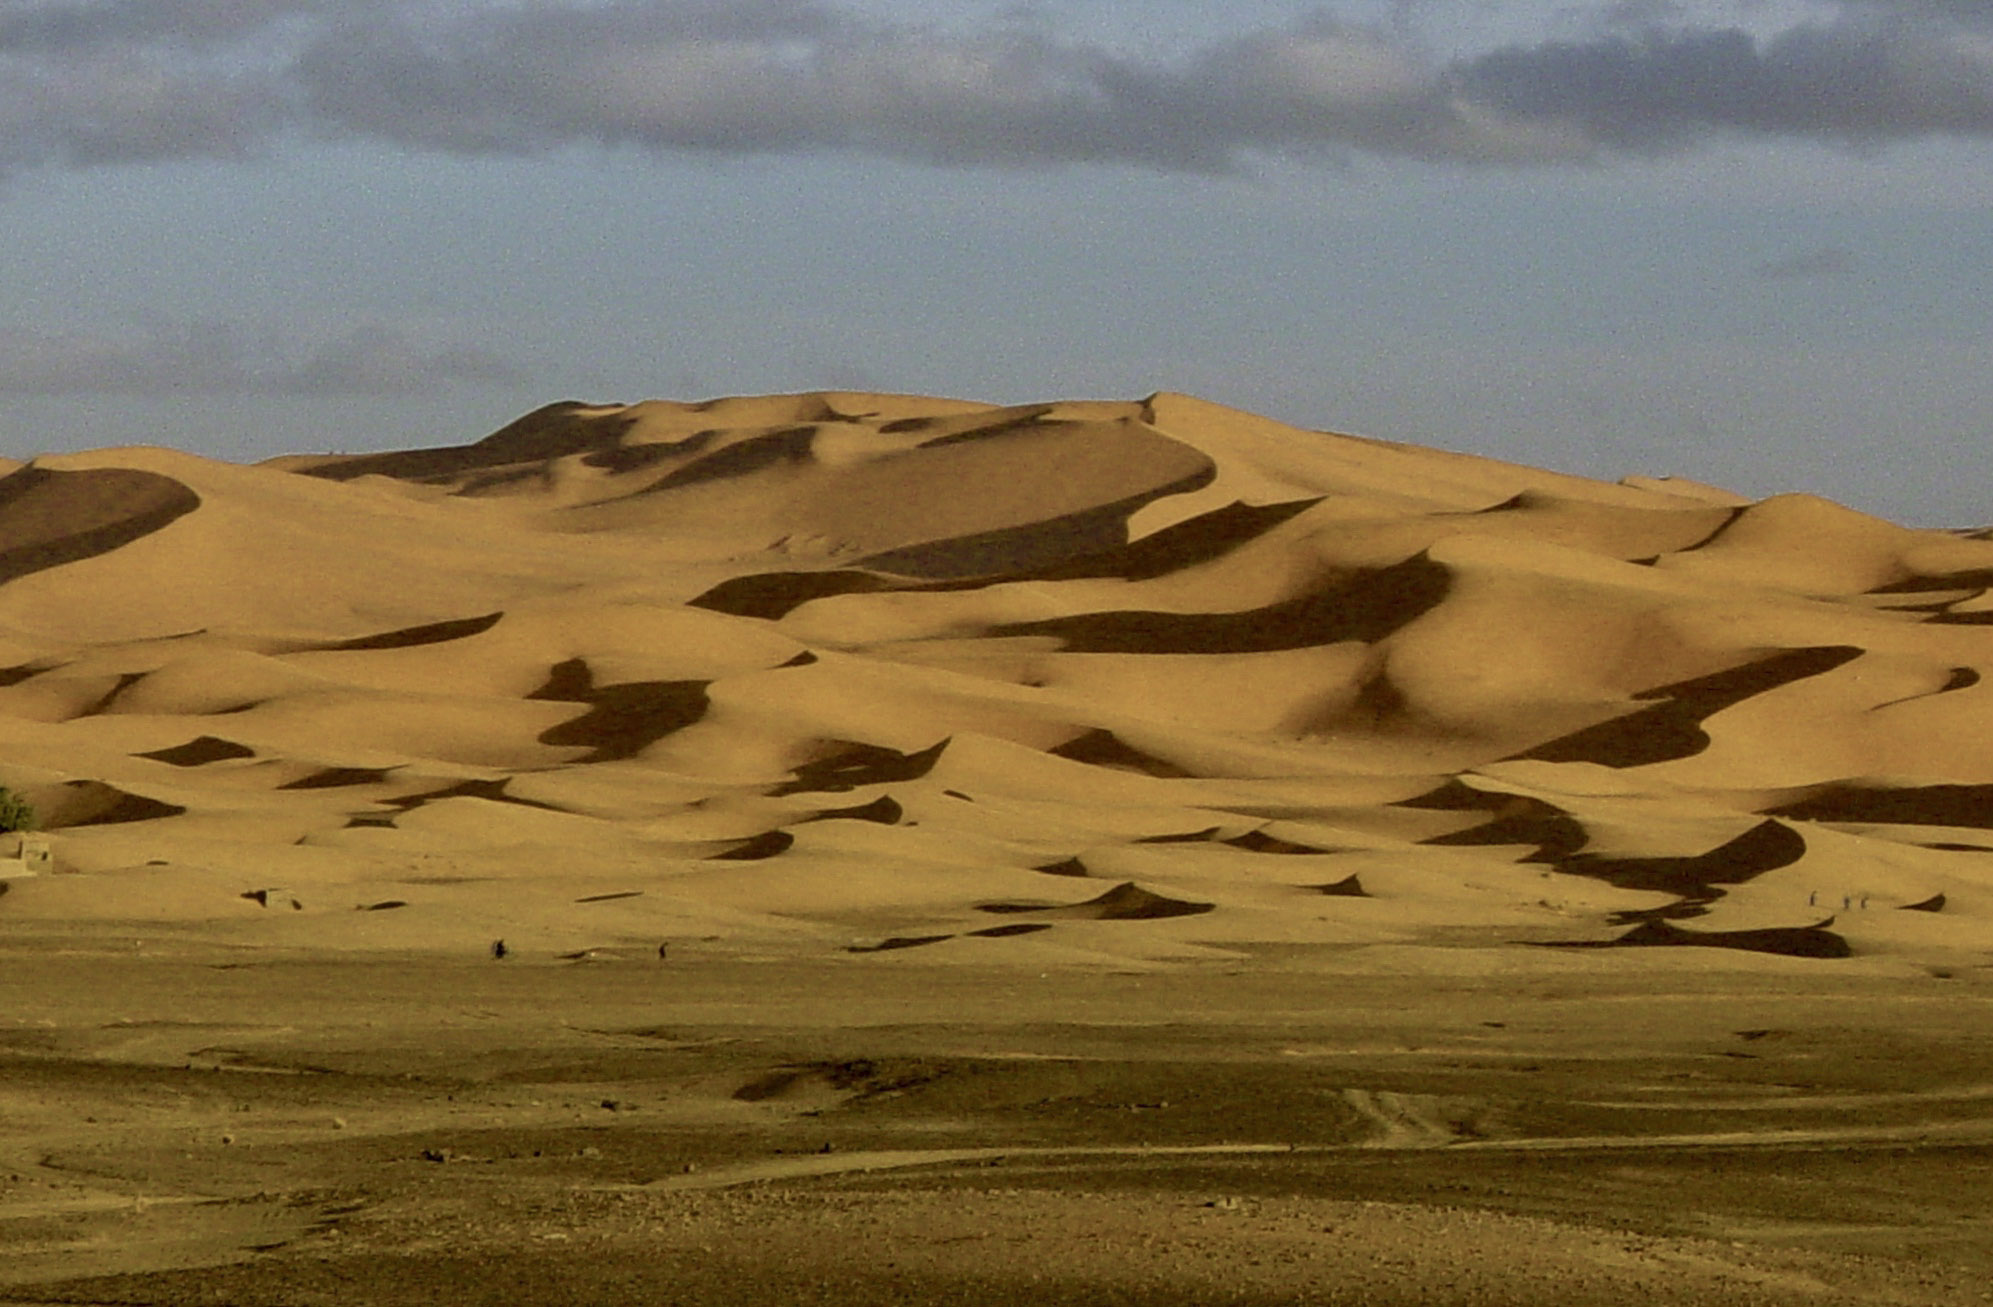 The deserts of Southern Morocco